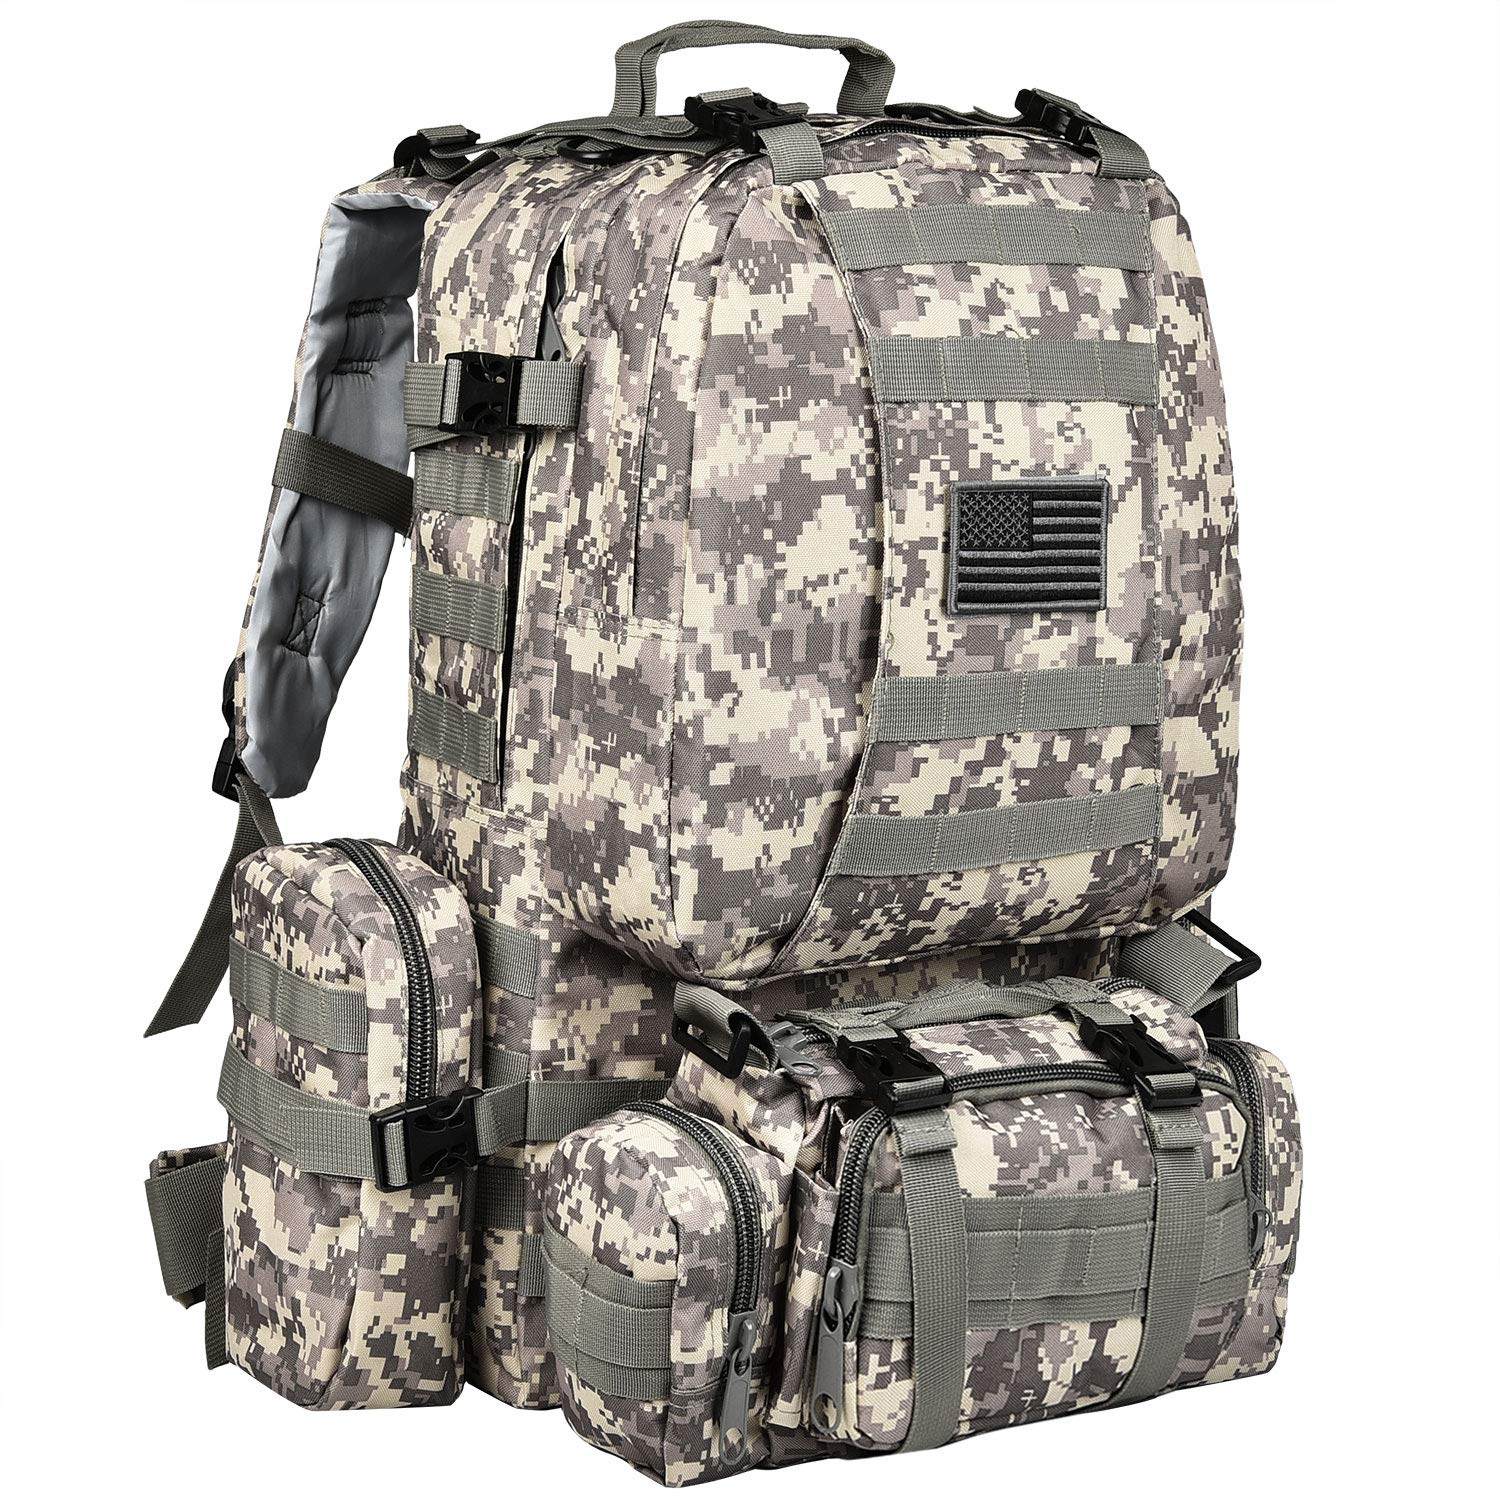 CVLIFE Tactical Military Backpack 60L Built-up Army Rucksacks Outdoor 3 Day Assault Pack Combat Molle Backpack for Hunting Hiking Fishing with Flag Patch Camouflage ACU by CVLIFE (Image #1)